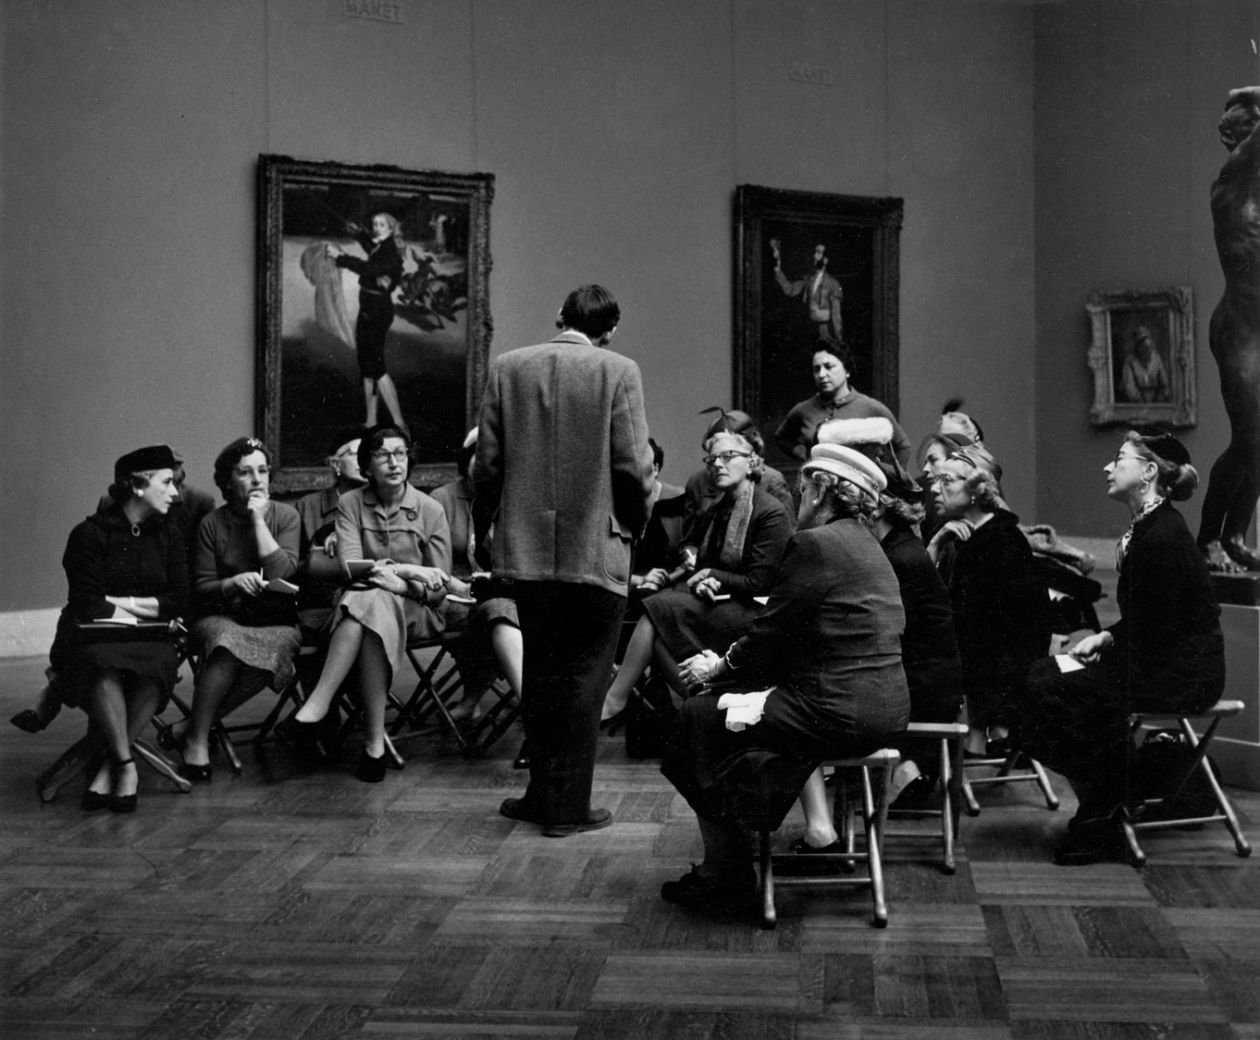 Metropolitan Museum of Art, NYC (1958) by Dave Heath